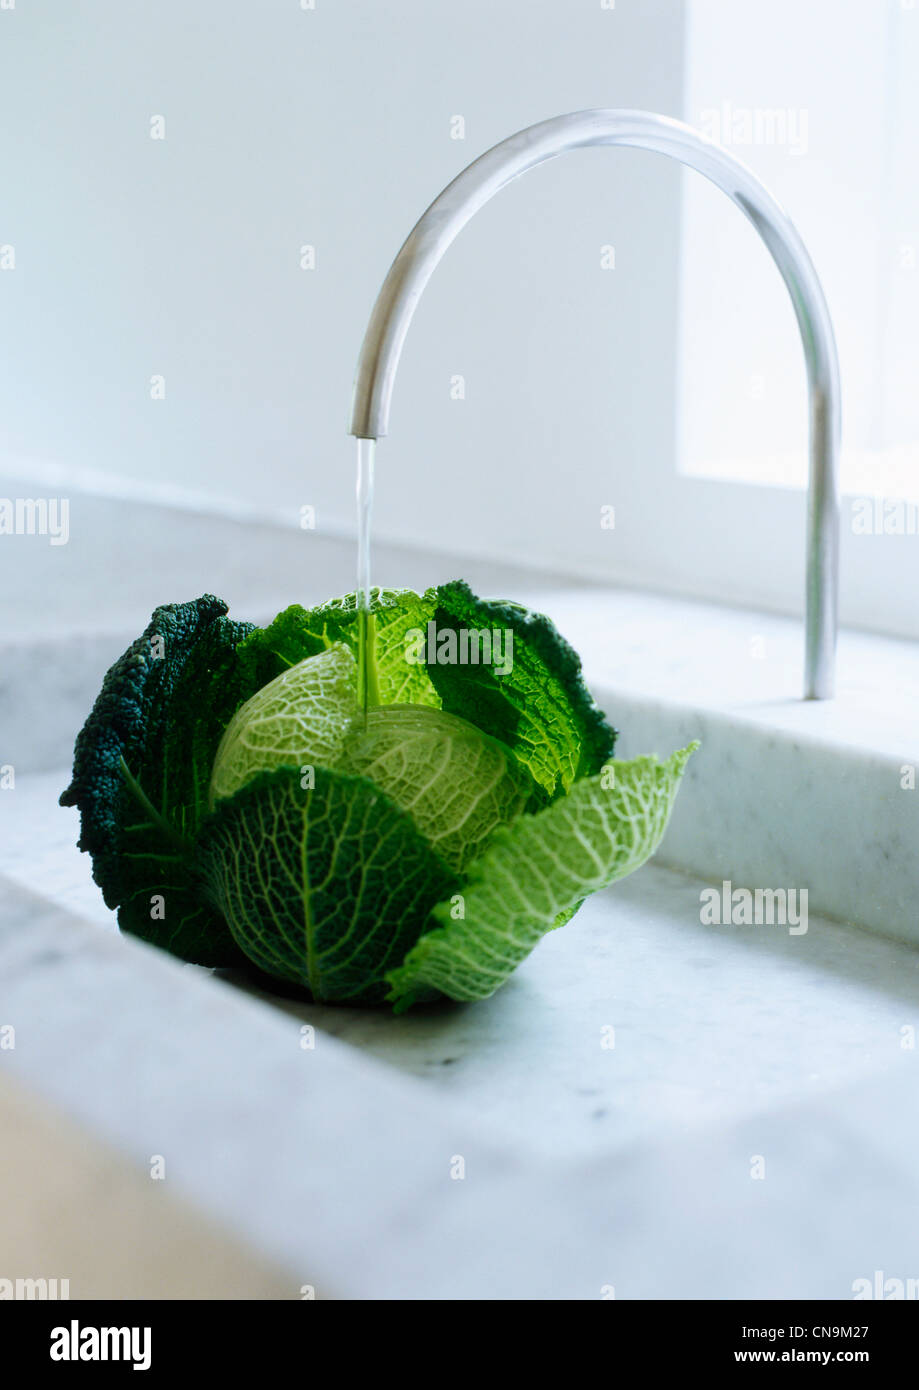 Head of cabbage under faucet - Stock Image